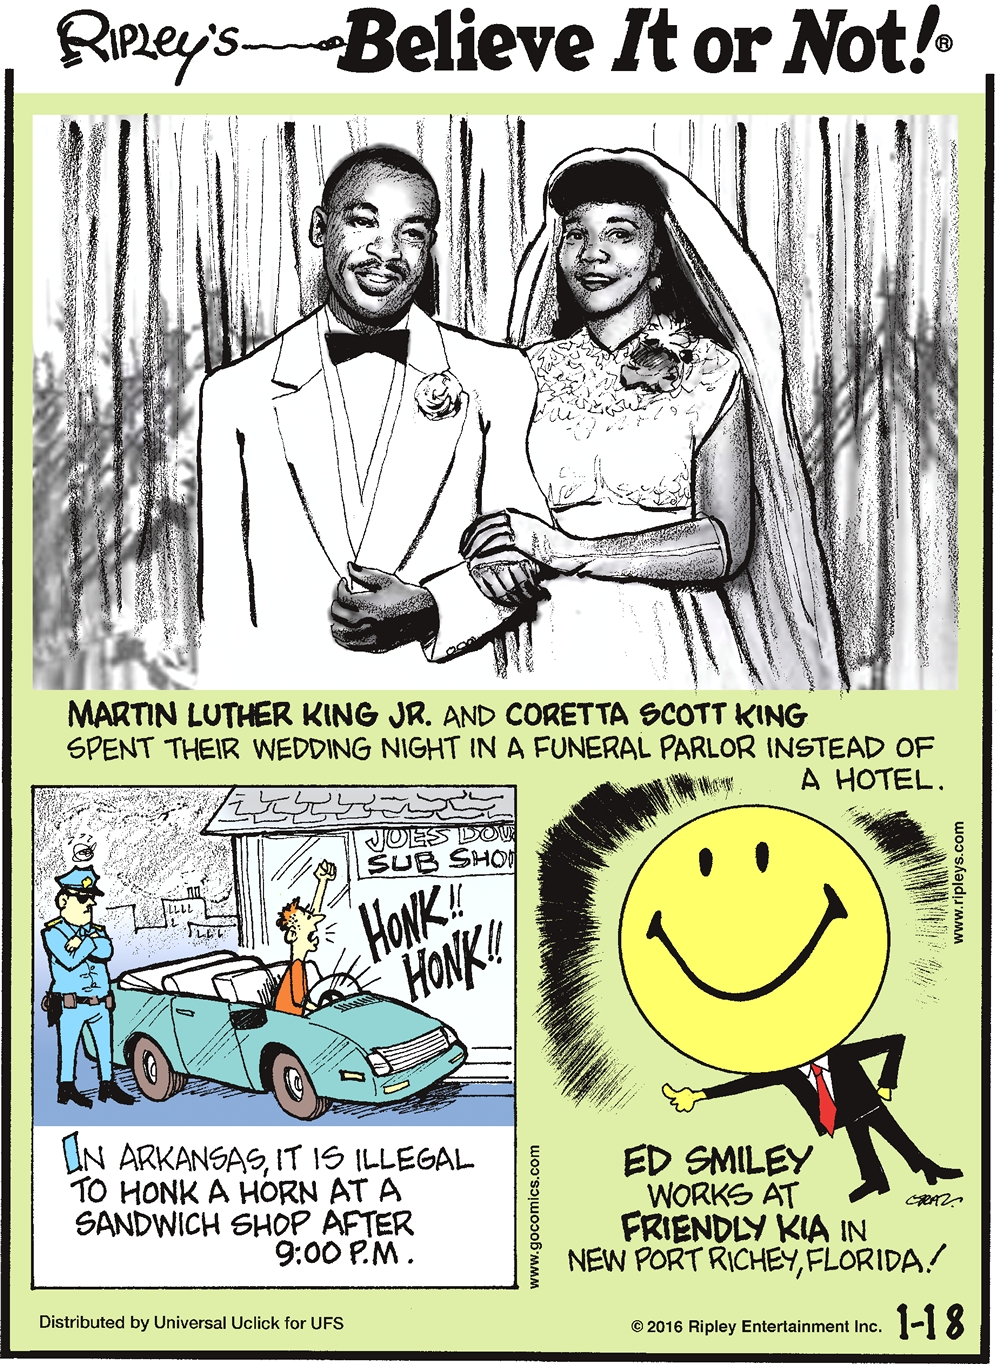 Martin Luther King Jr. and Coretta Scott King spent their wedding night in a funeral parlor instead of a hotel. -------------------- In Arkansas, it is illegal to honk a horn at a sandwich shop after 9:00pm. -------------------- Ed Smiley works at Friendly Kia in New Port Richey, Florida!